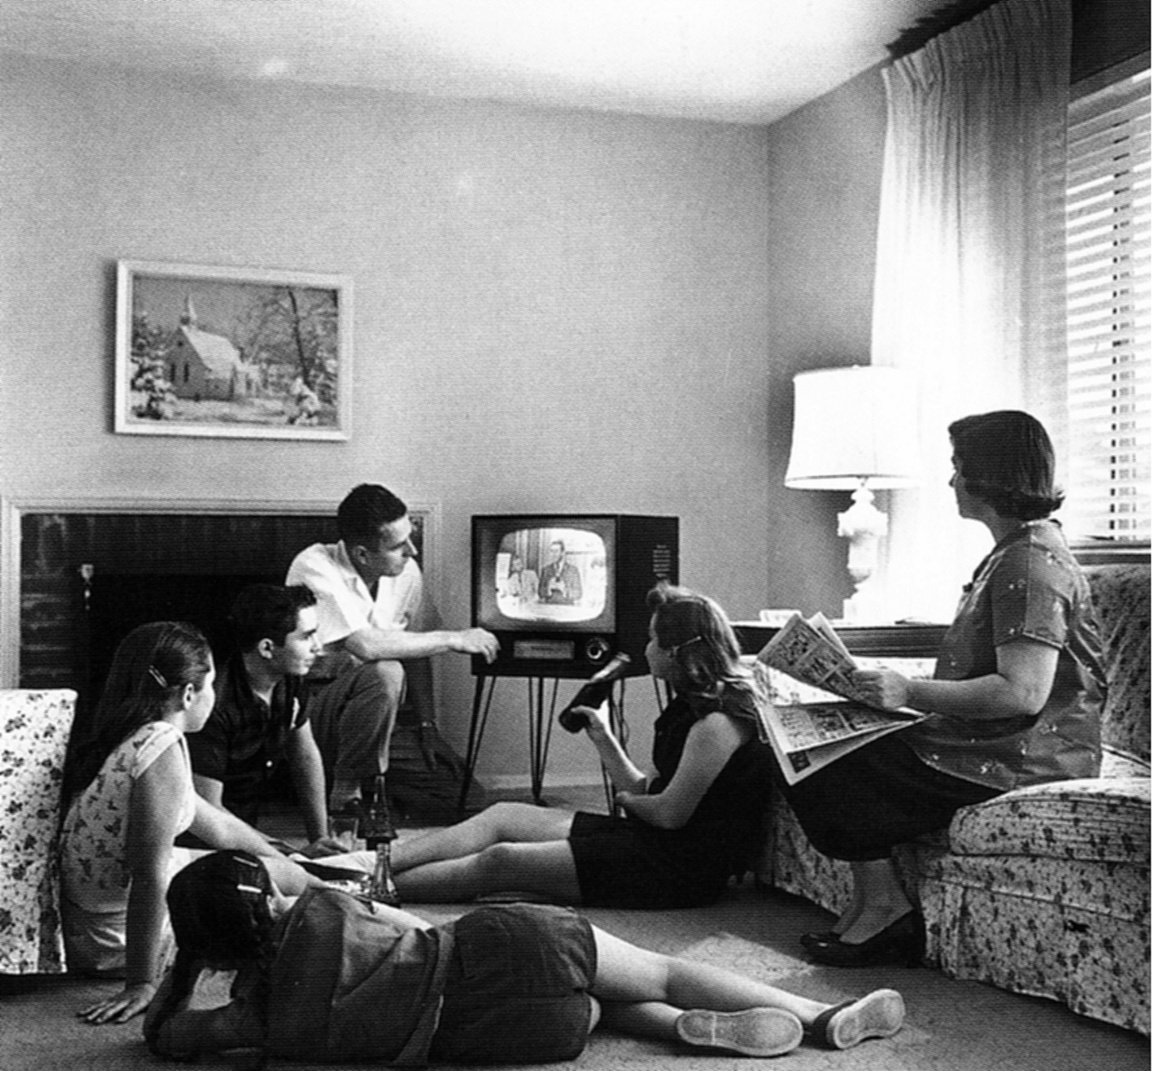 gadget destroyes d communication among friend and Tvdestroyedcommunication - do you agree or disagree with however, some people believe that television has destroyed communication among friends and.